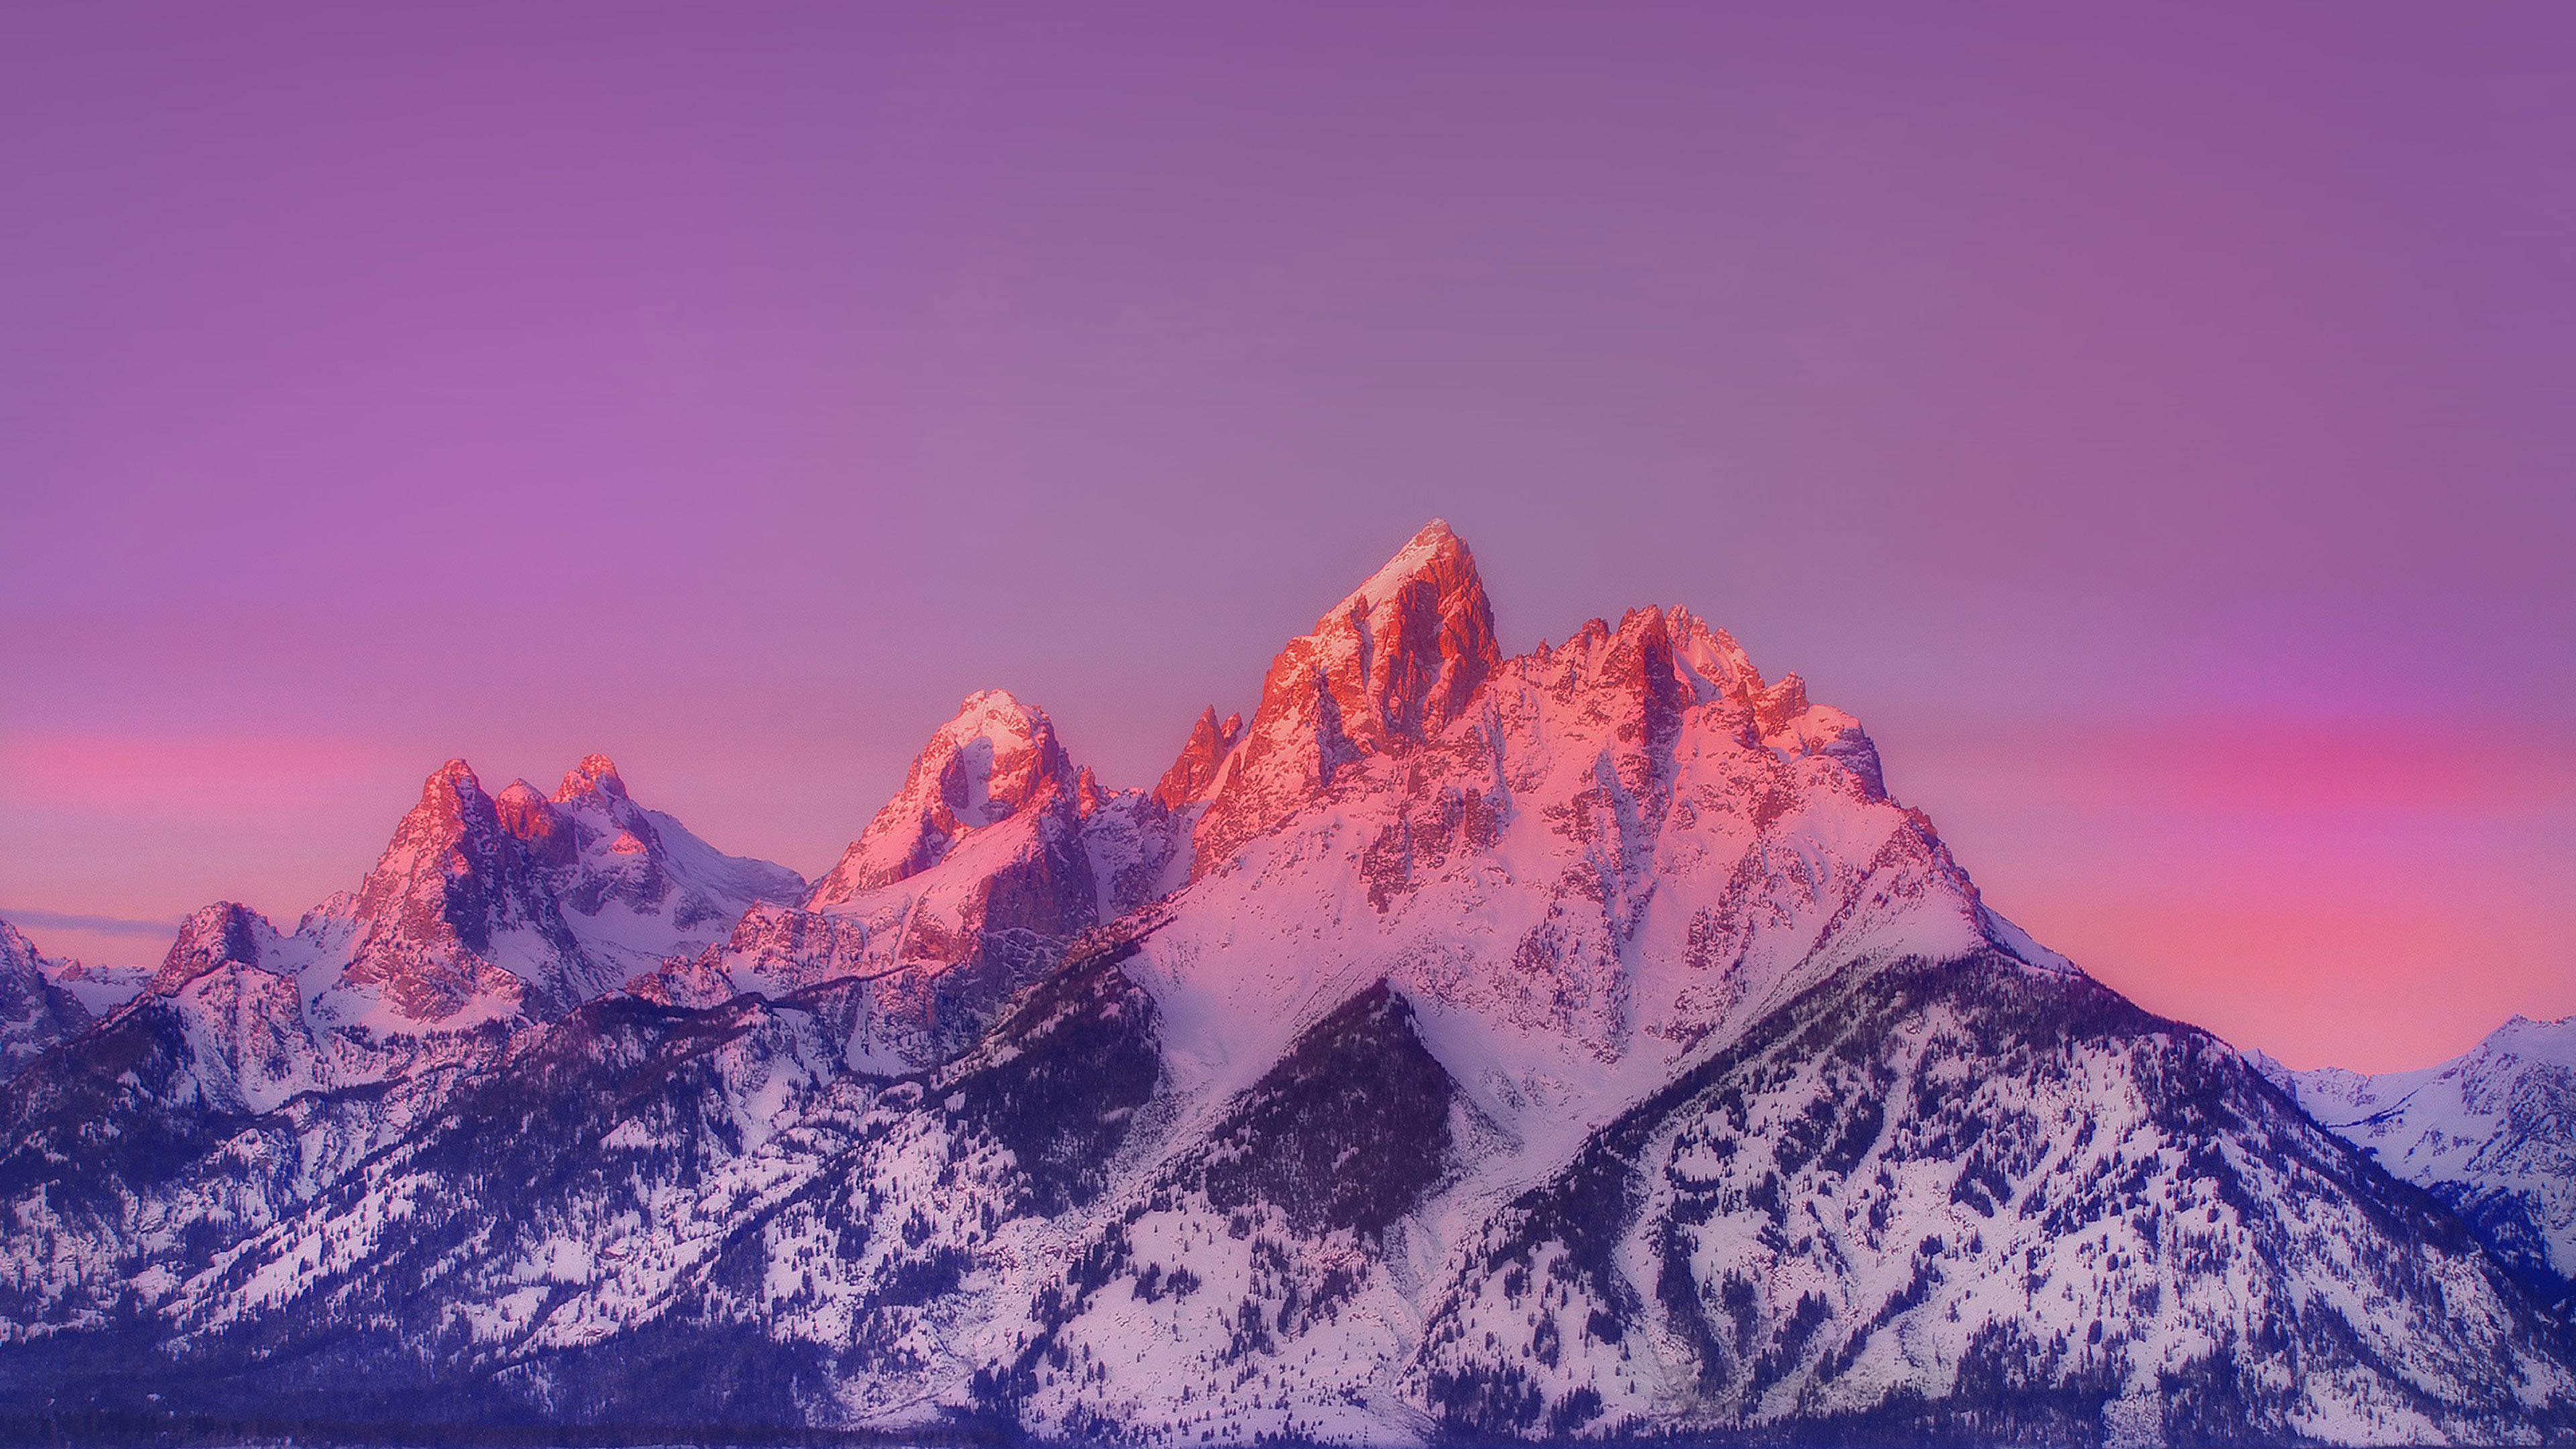 Bing Fall Desktop Wallpaper Mg90 Mountain Mother Sunset Nature Awesome Sky Papers Co